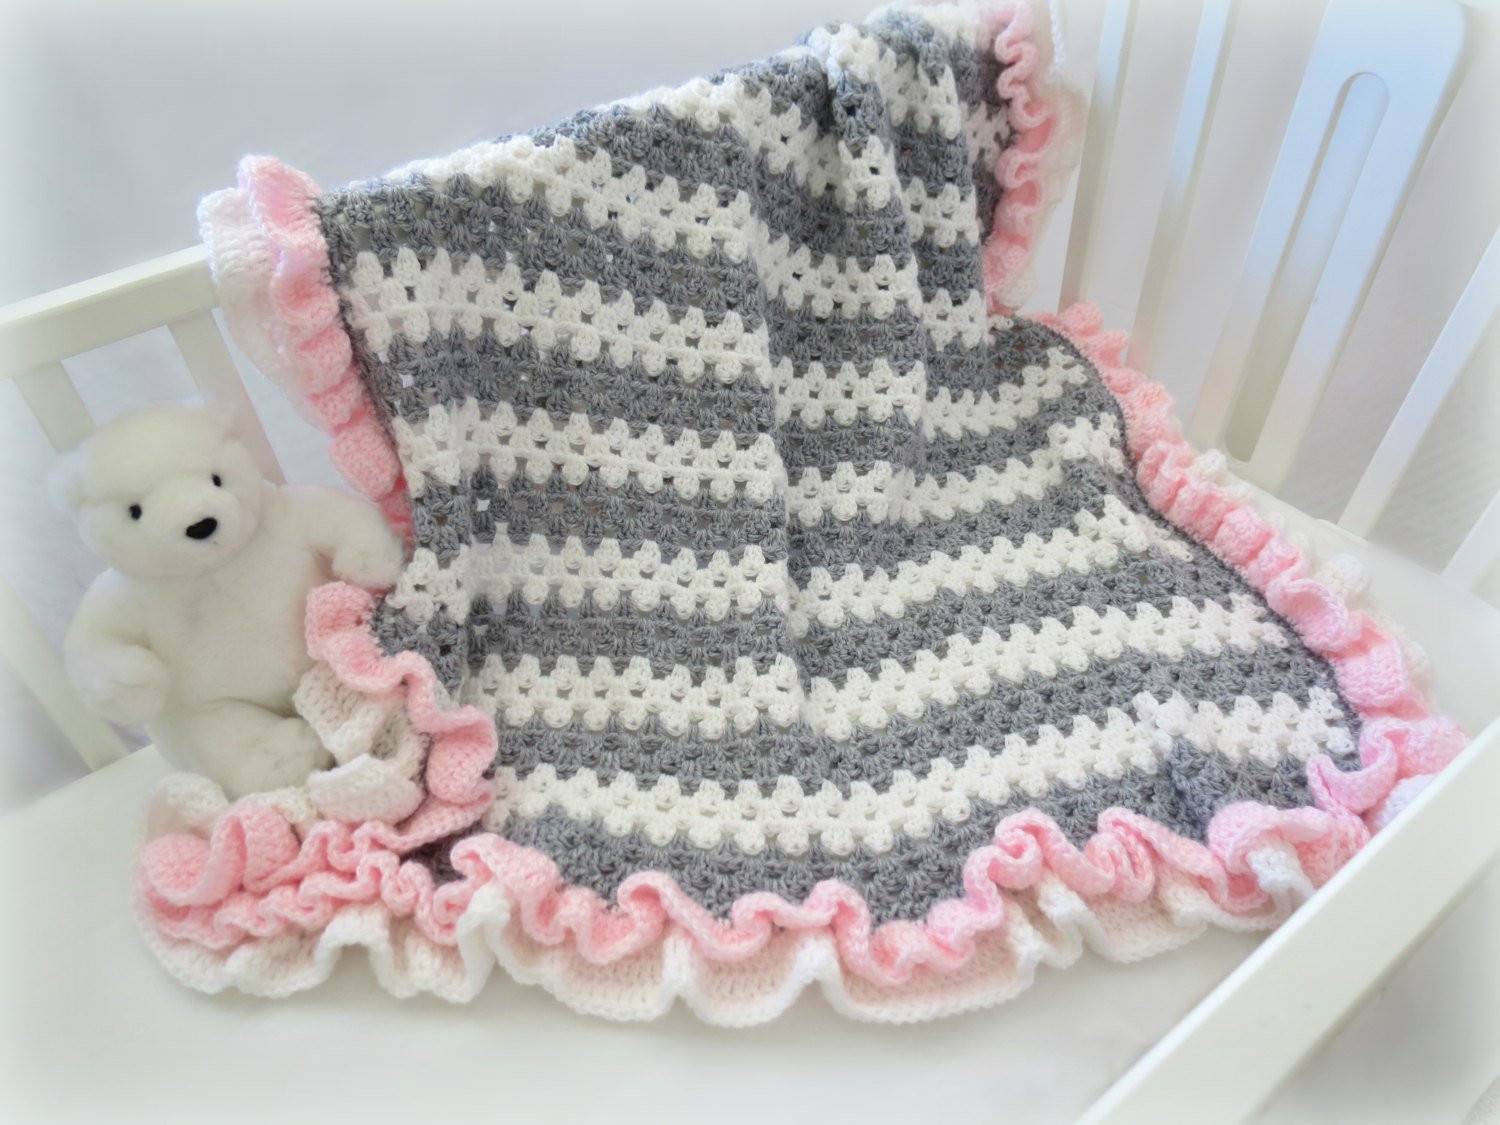 Baby Boy Crochet Blanket Patterns New Crochet Baby Blanket Pattern Baby Crochet Blanket Afghan Of Baby Boy Crochet Blanket Patterns Luxury Baby Blanket with Cabled Border Crochet Pattern